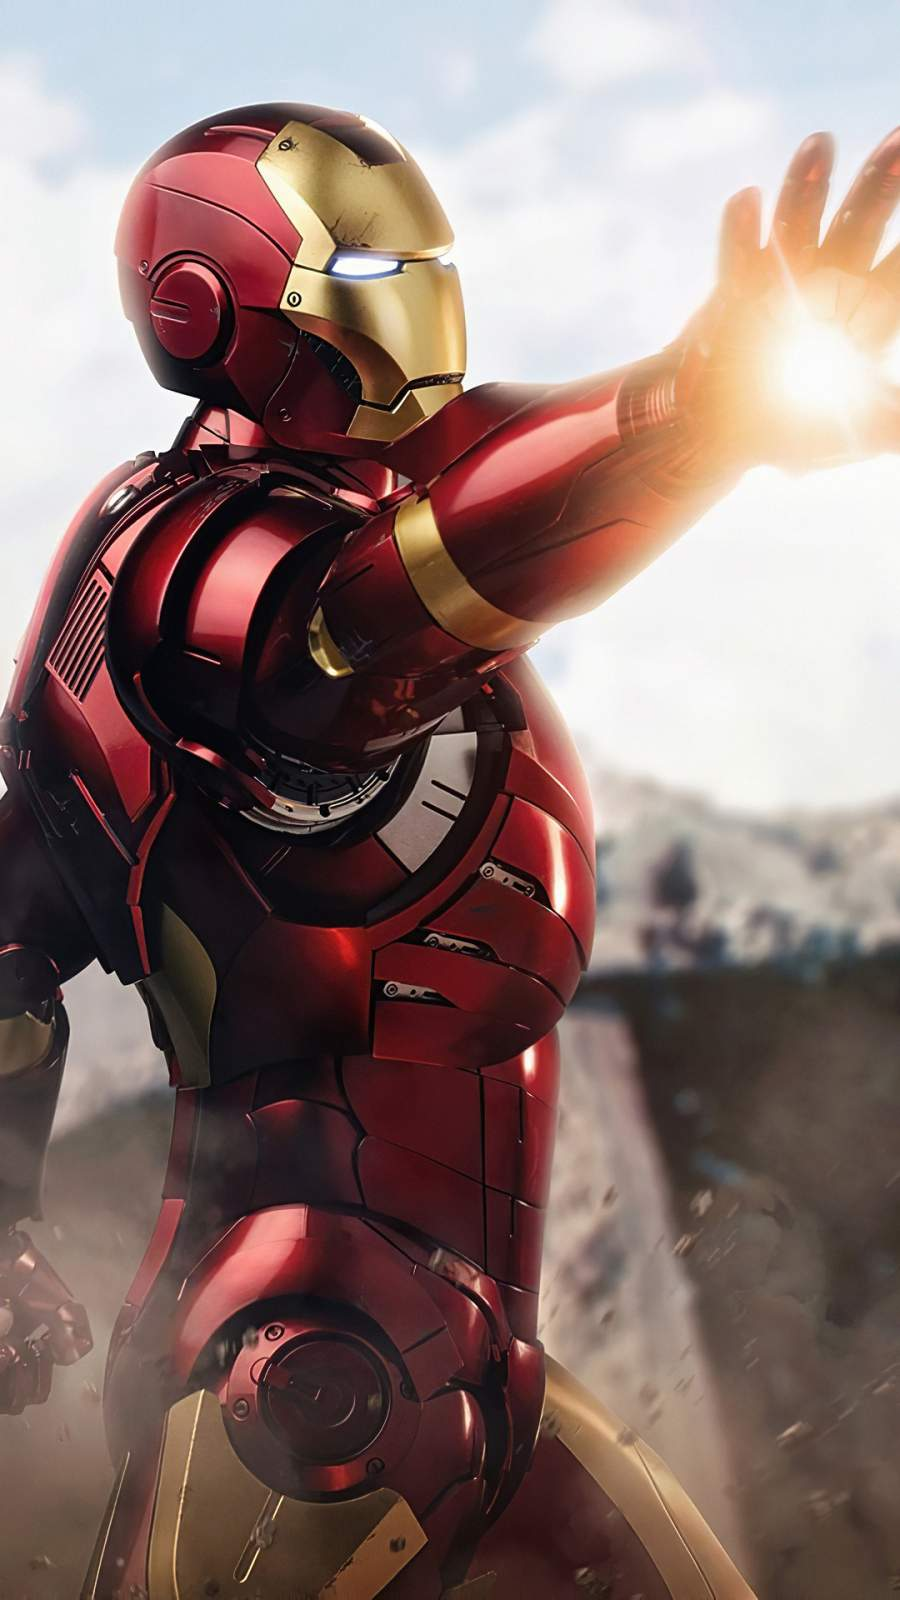 Iron Man Ready for Fight iPhone Wallpaper 1